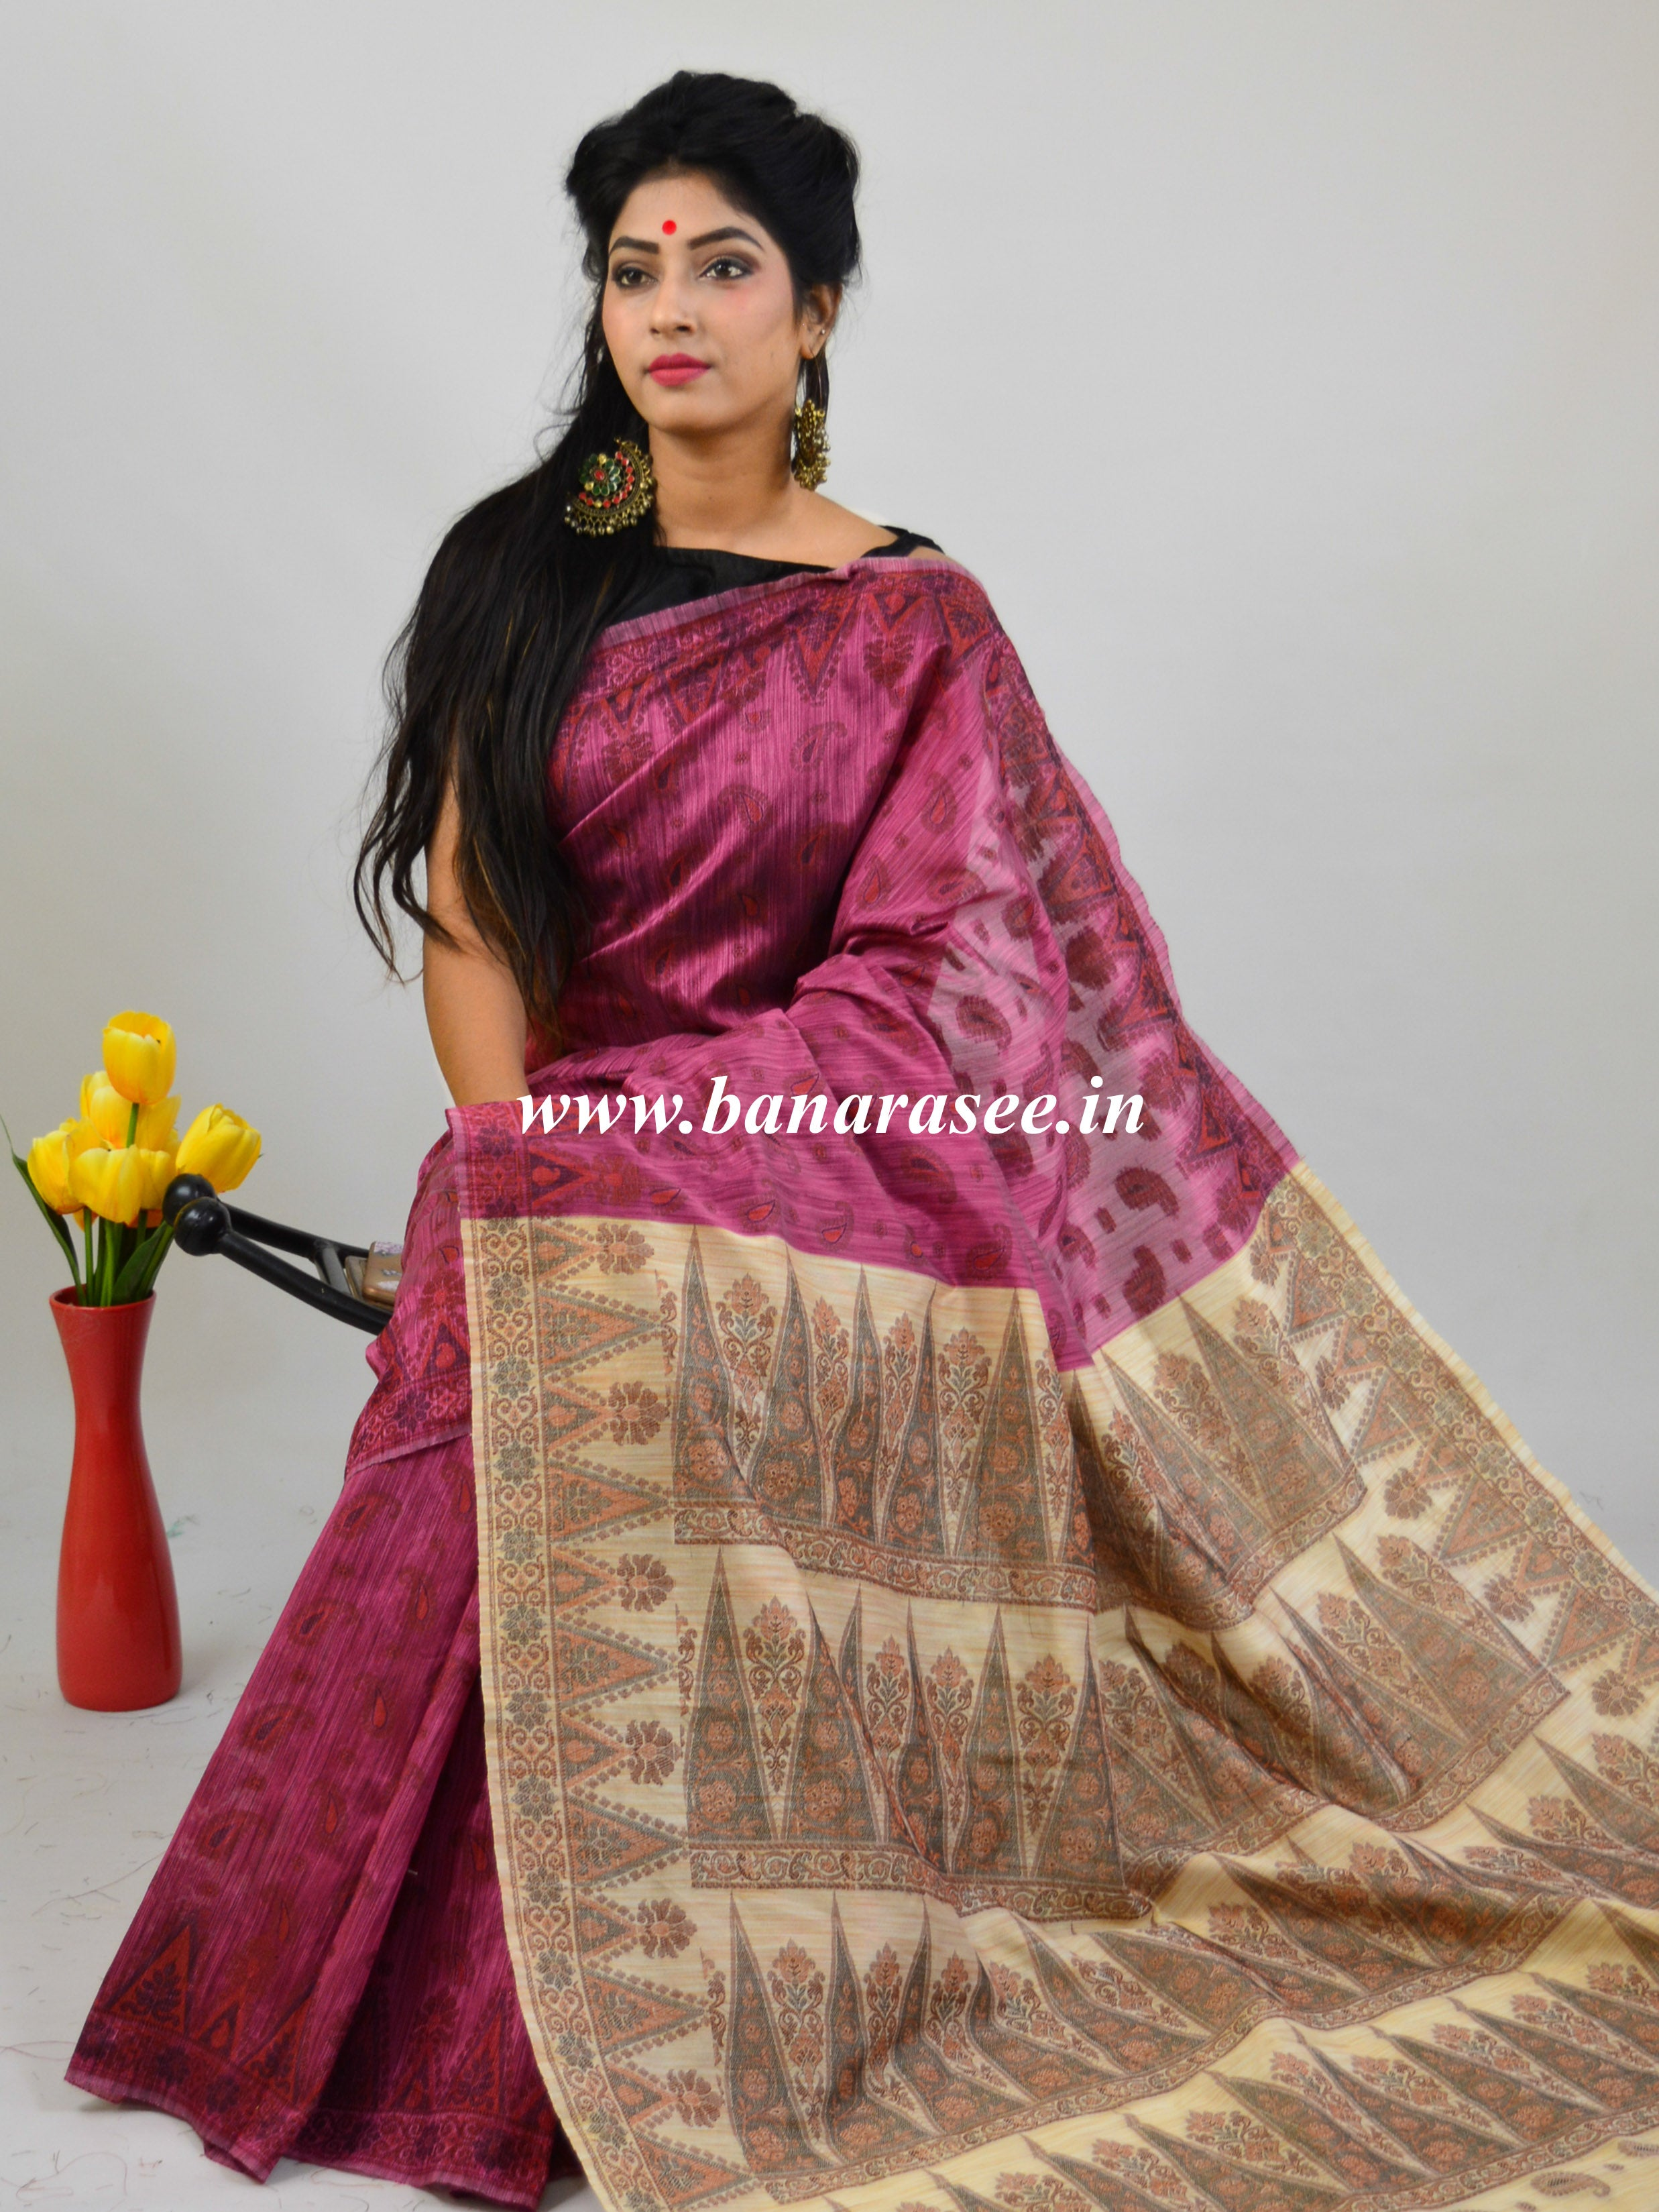 Banarasee Art Silk Saree With Floral Woven Design Contrast Beige Pallu-Pink